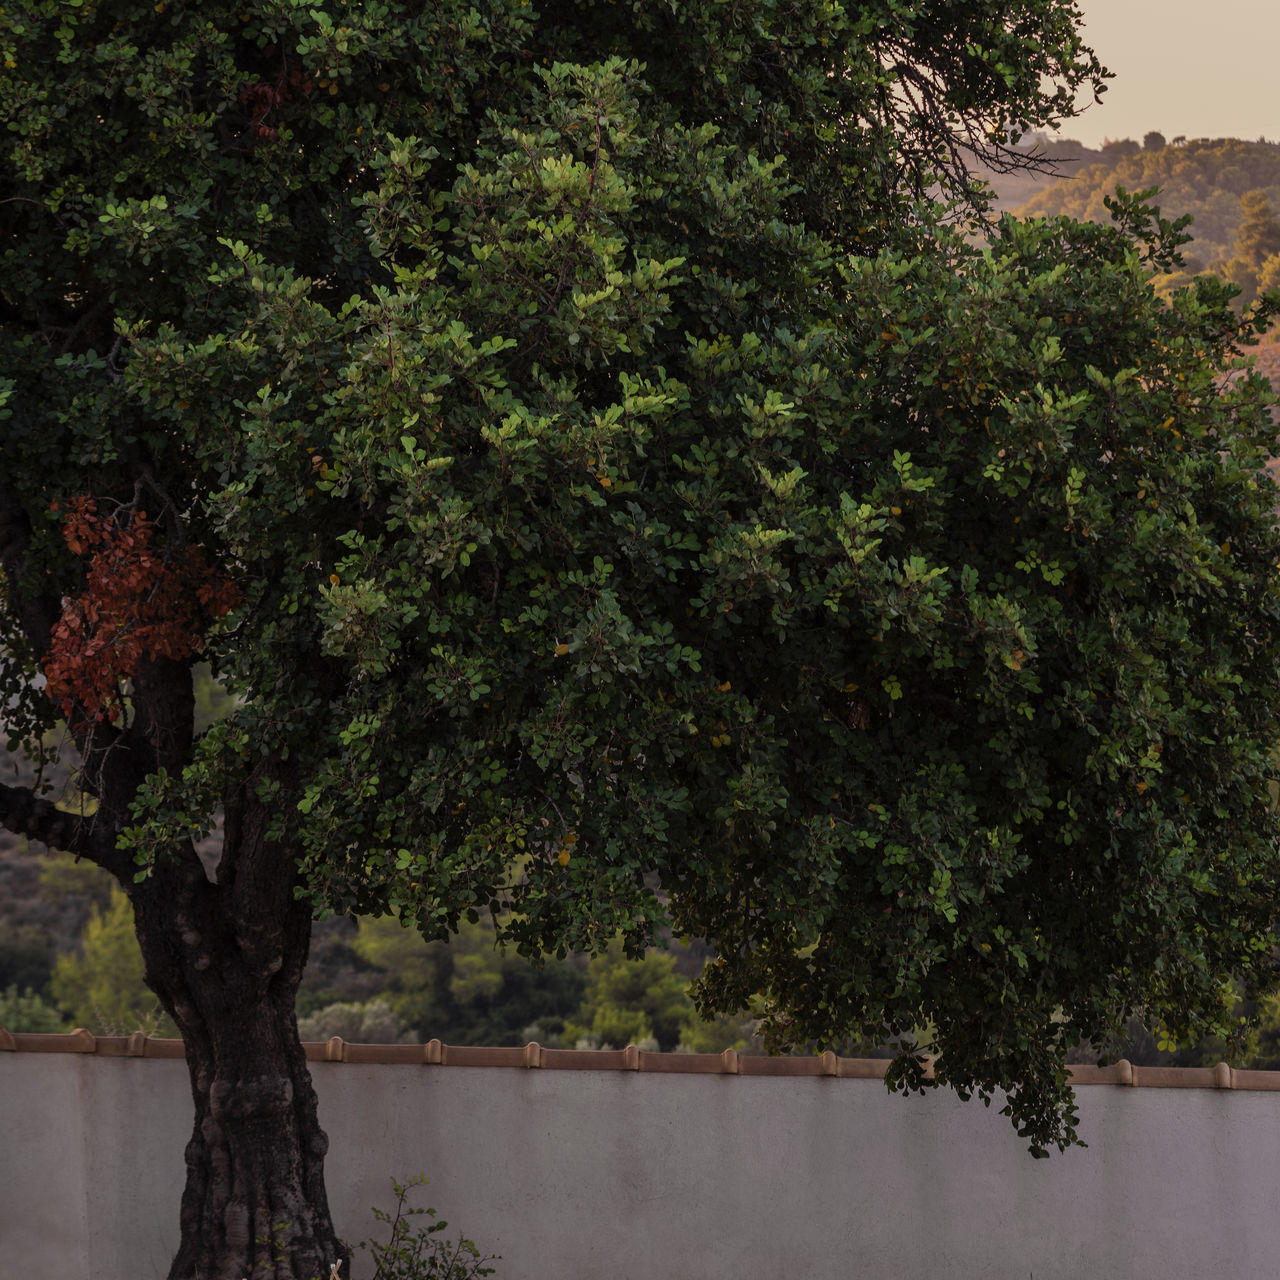 tree, growth, plant, nature, outdoors, no people, day, beauty in nature